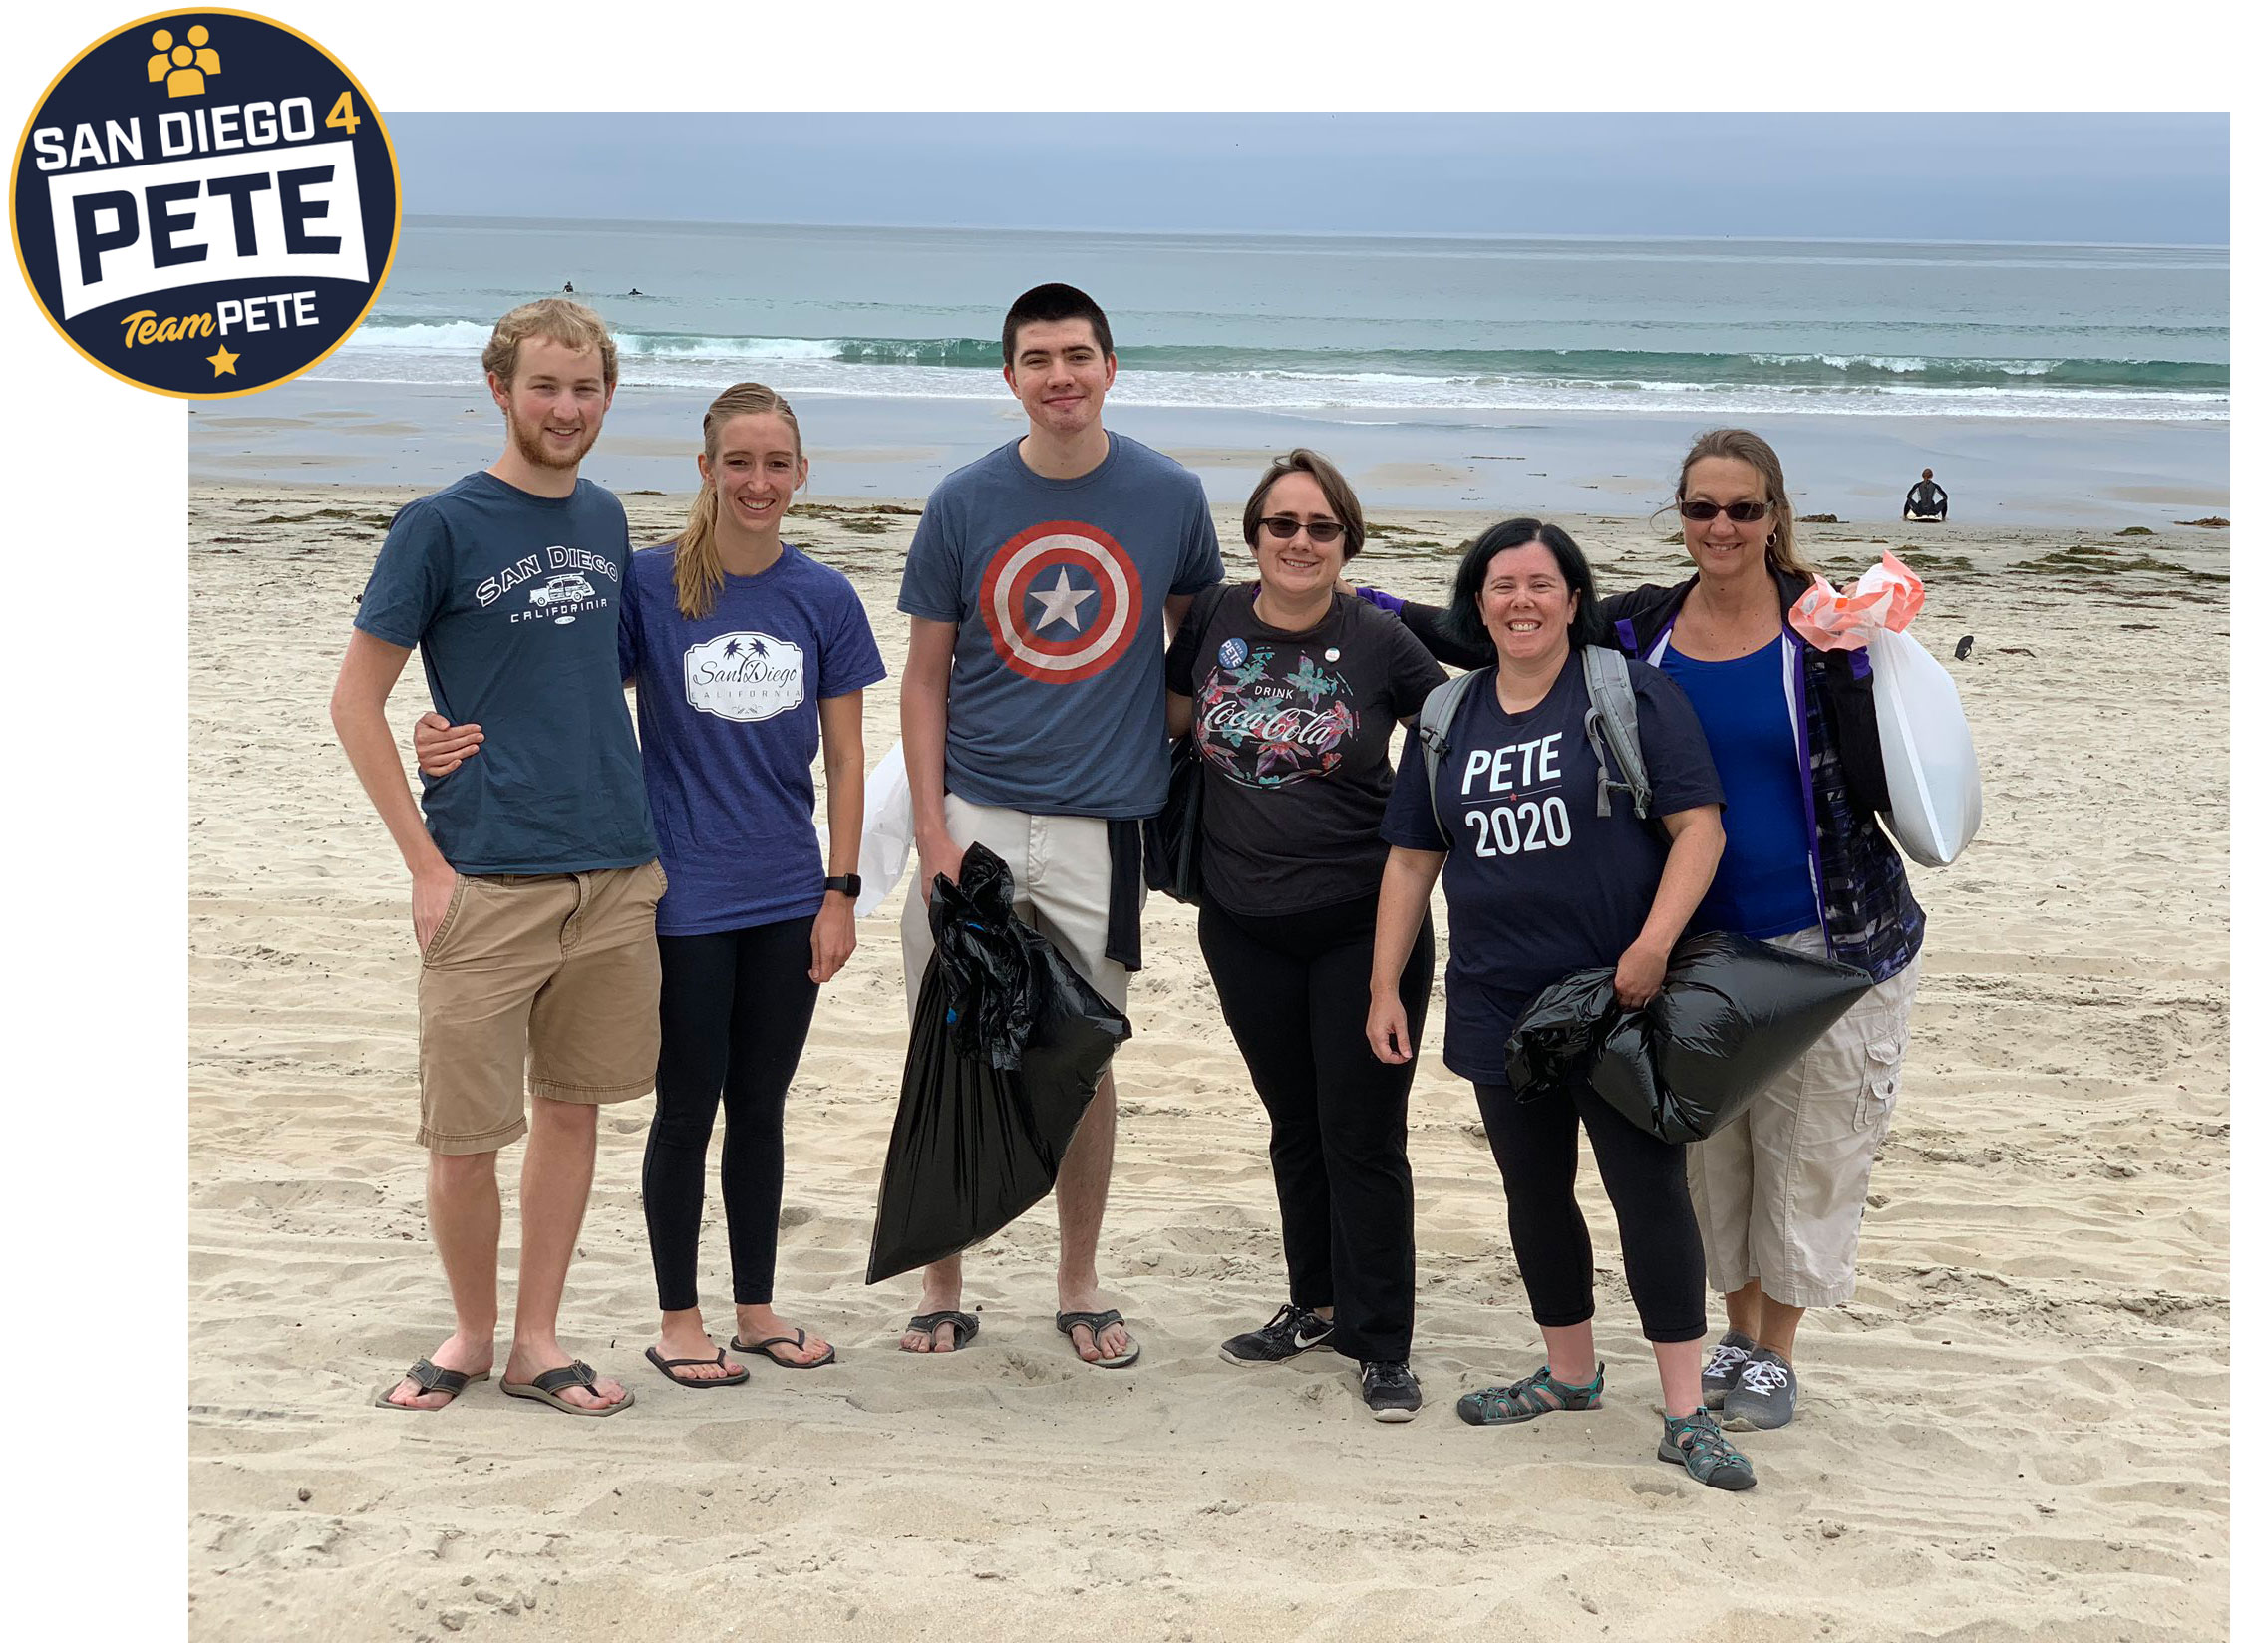 Meet San Diego for Pete - Andi is wearing the Pete 2020 shirt in the picture above, where a group of Pete supporters met up for a beach clean up!